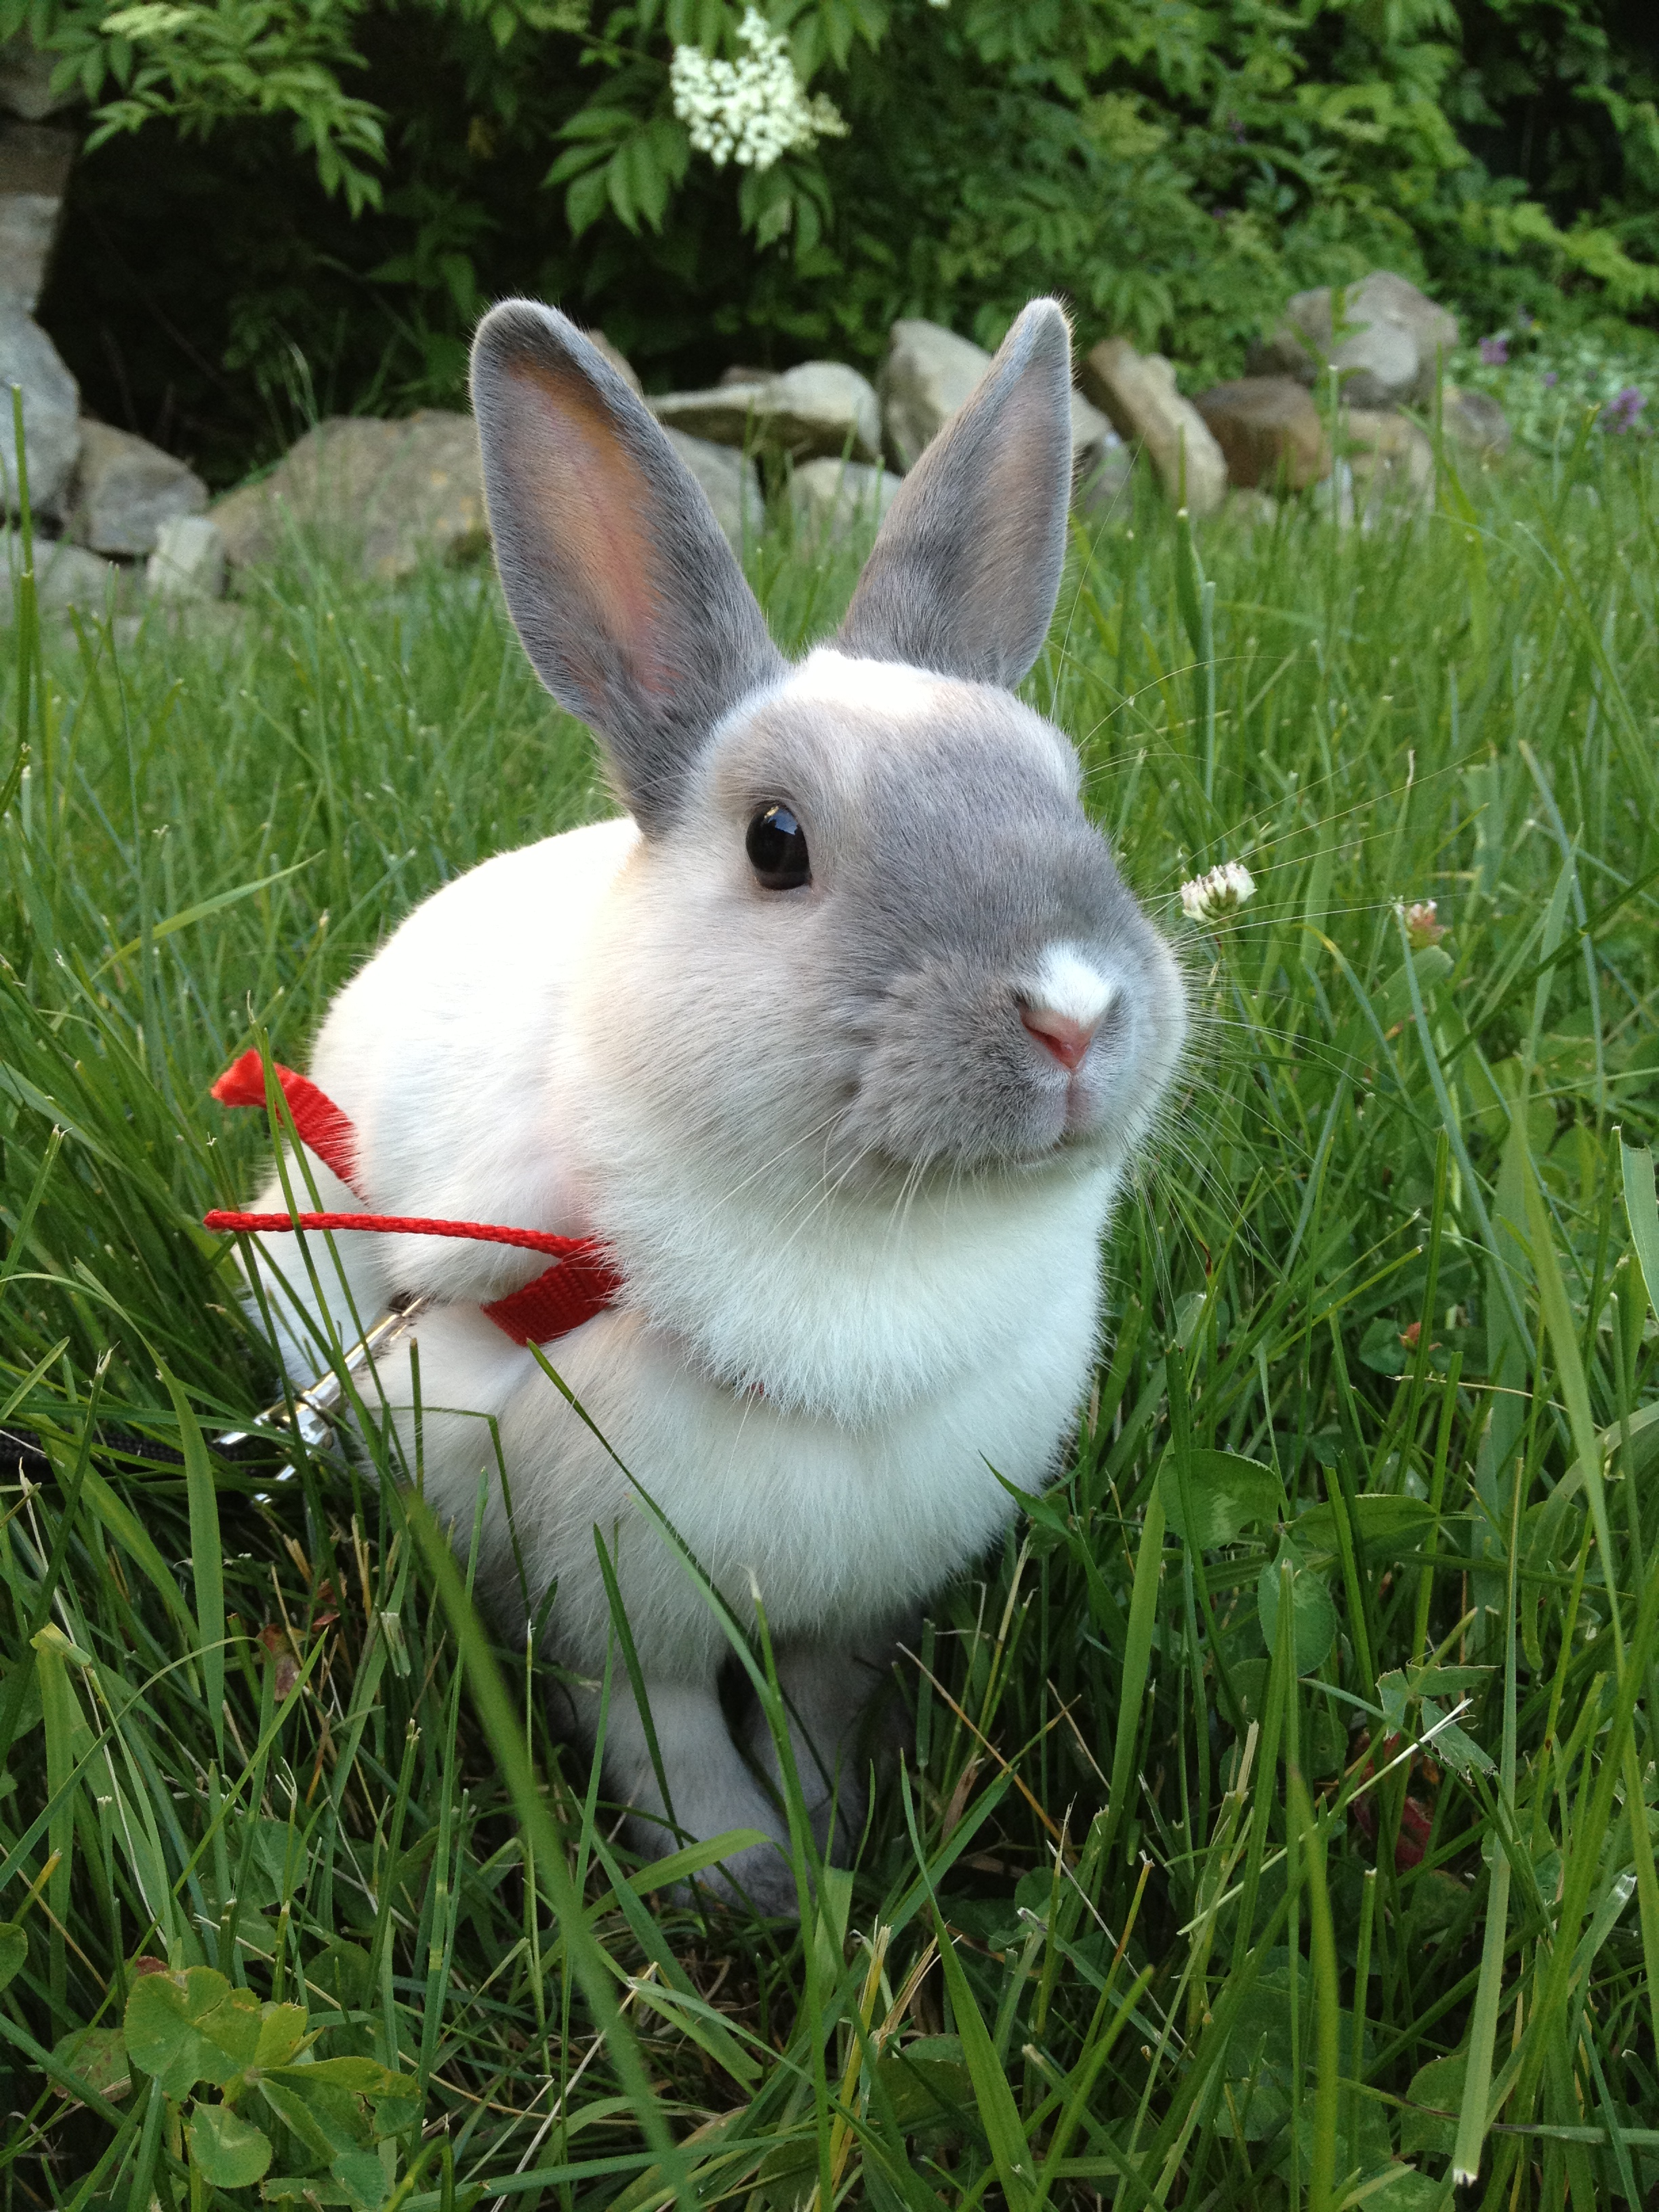 Photos Illustrating Two Sides of Bunny: One in Which He Sits Sweetly, Another in Which Grass Sticks Out of His Mouth While Eating 1